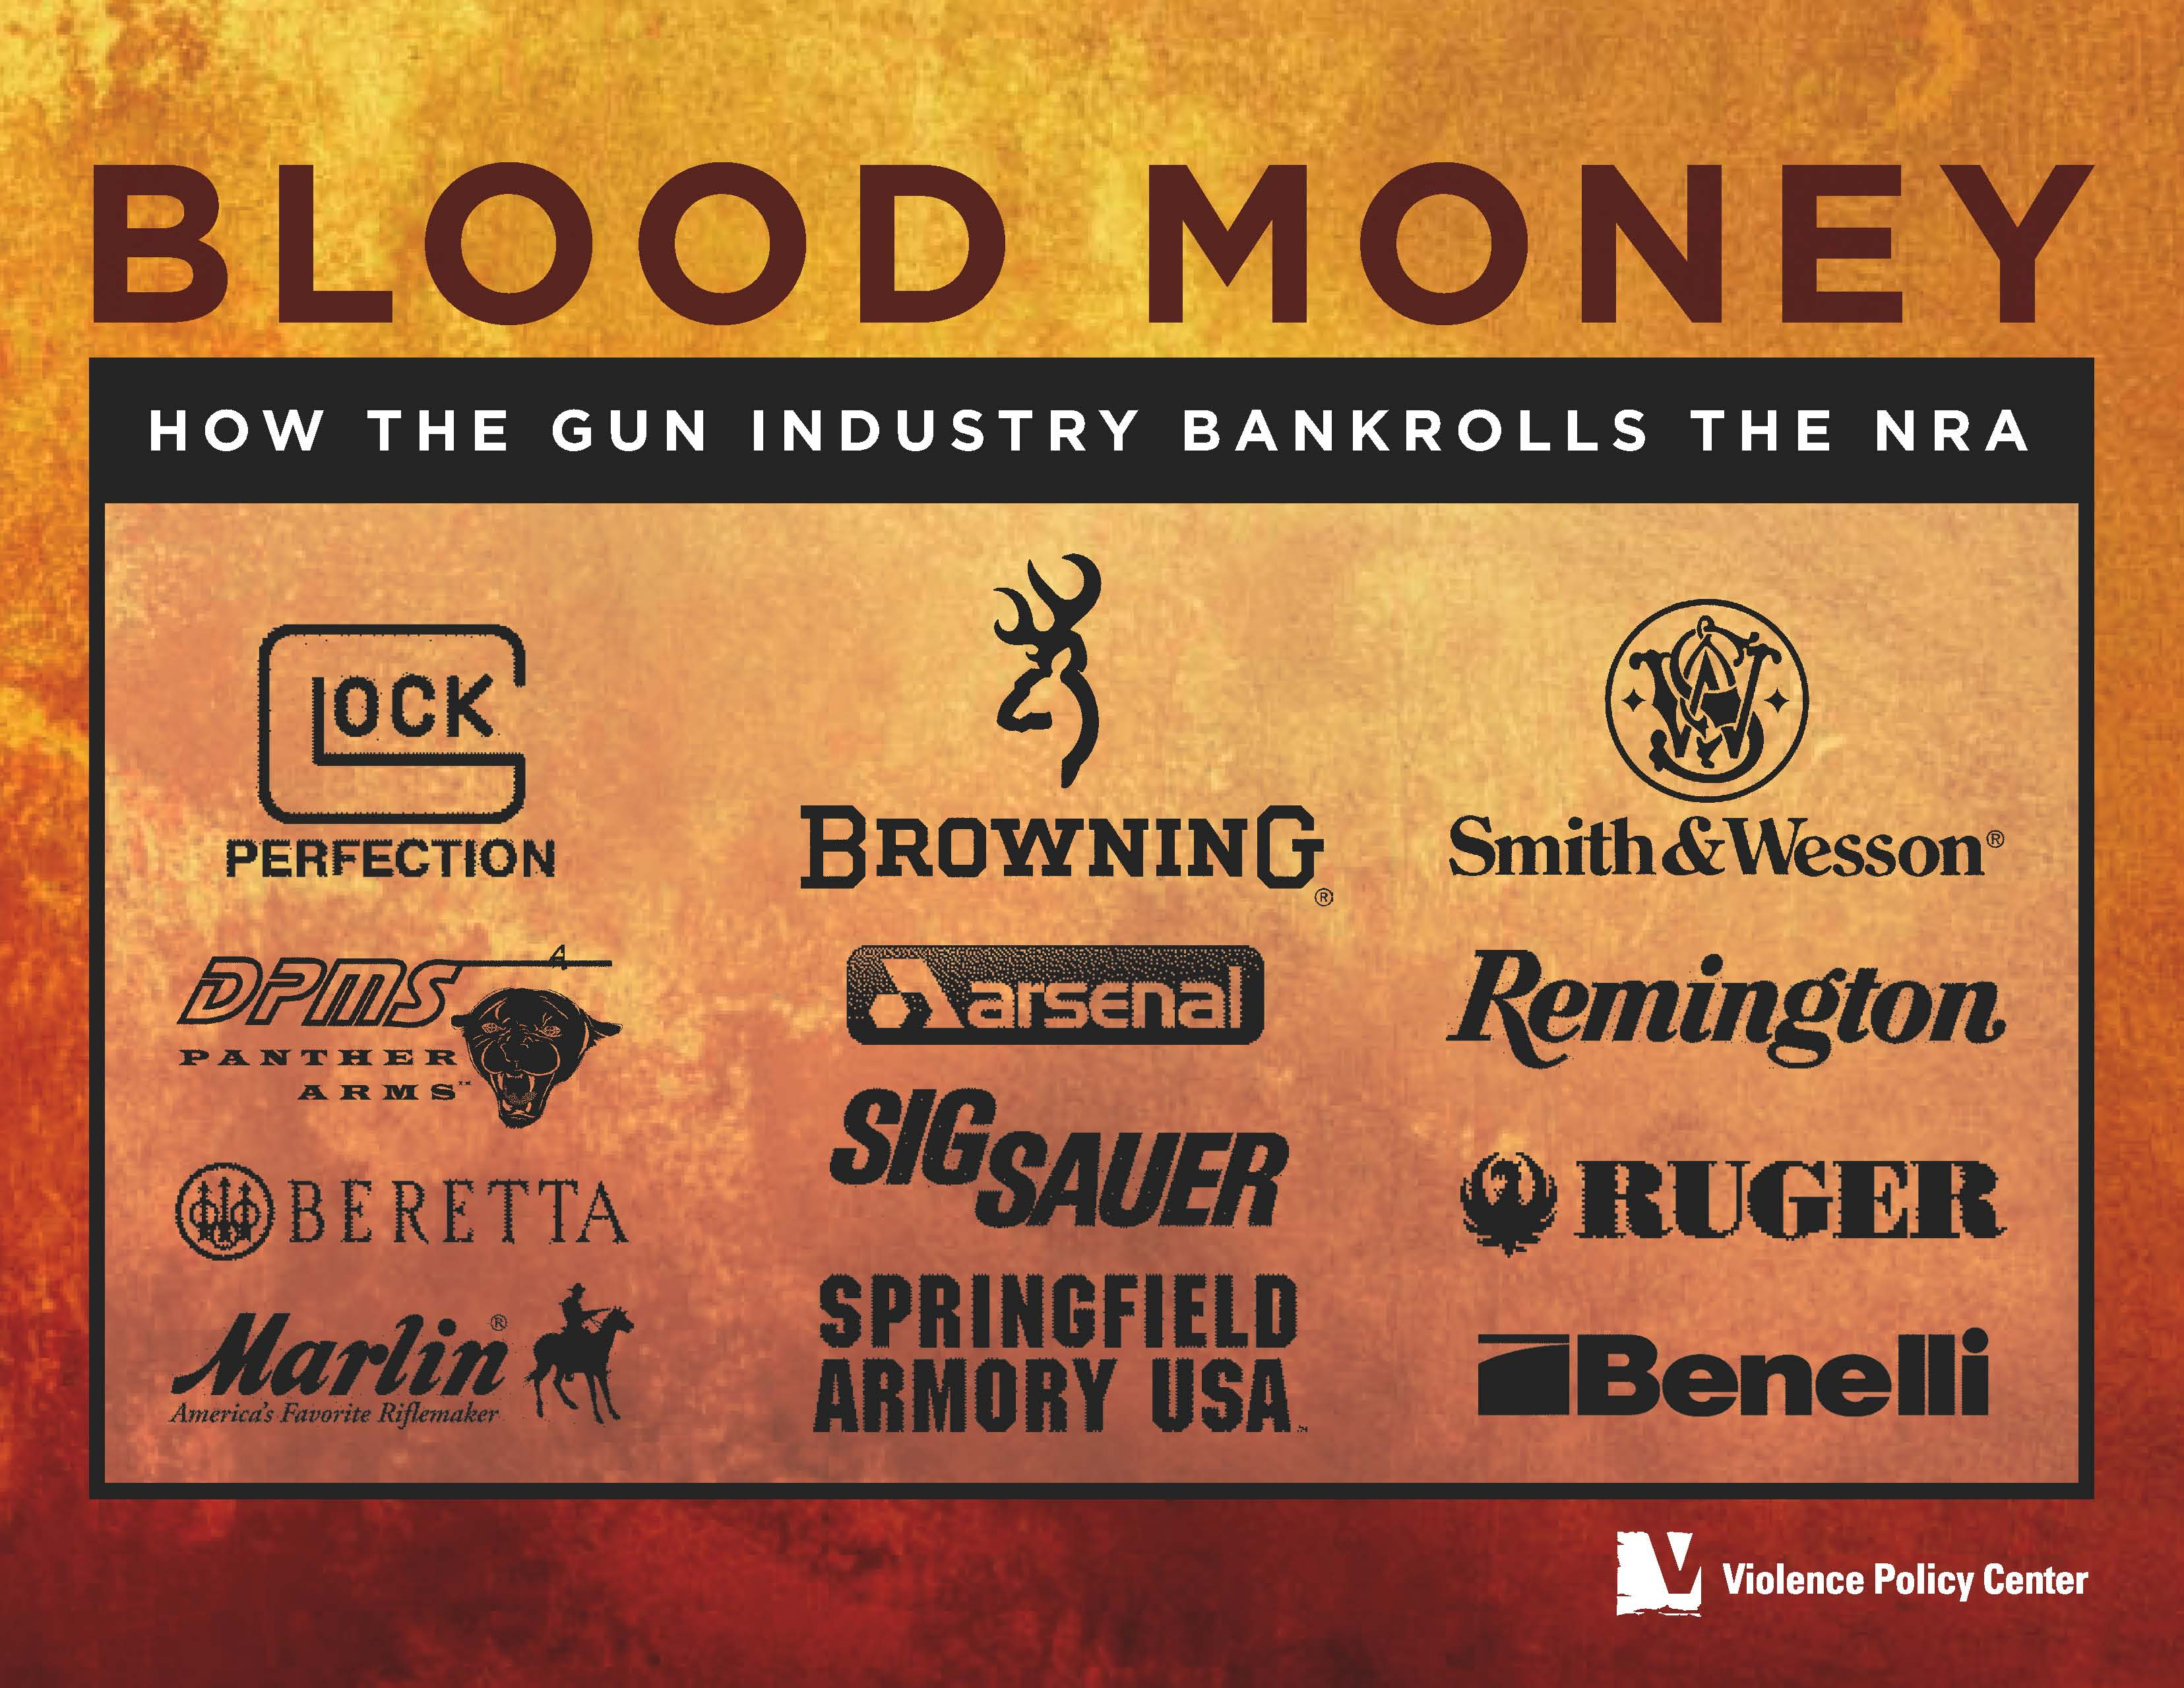 2011-04-13-blood_money_2b_red.jpg